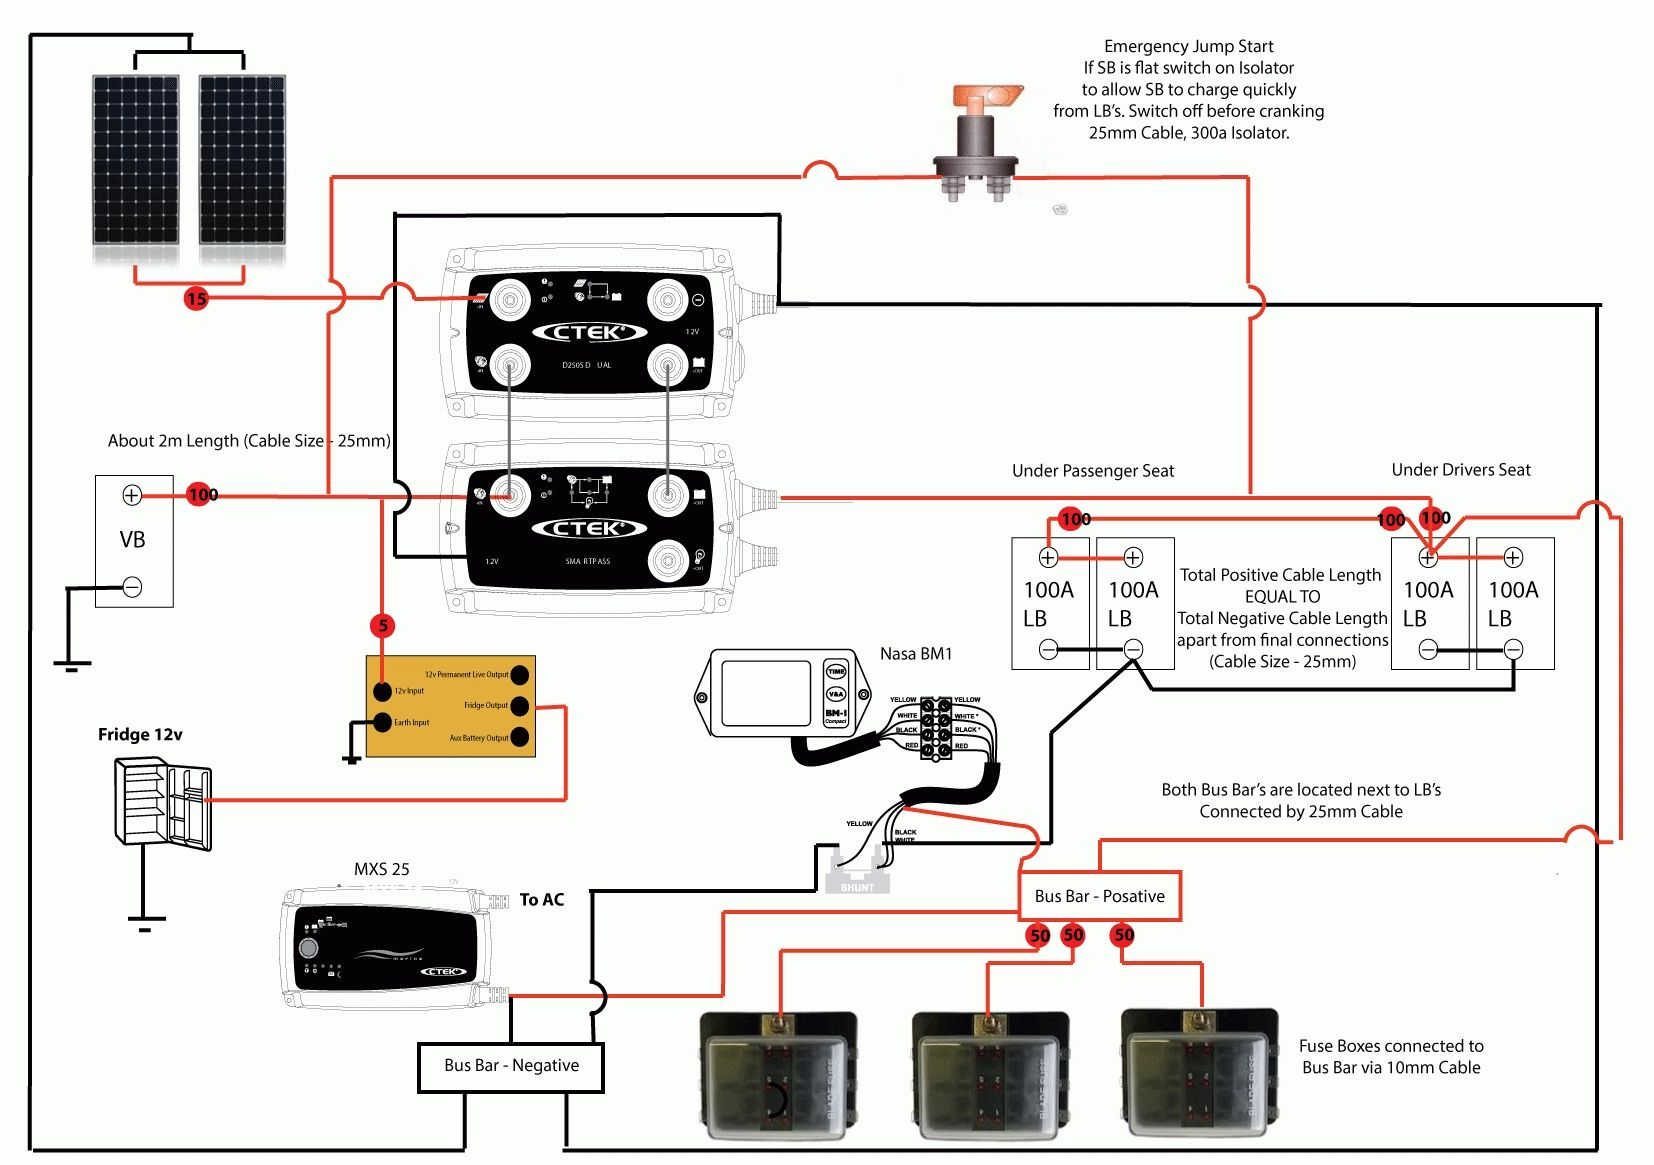 caravan twin electrics wiring diagram nasa battery monitor wiring diagram | wiringdiagram.org ... twin furnace wiring diagram